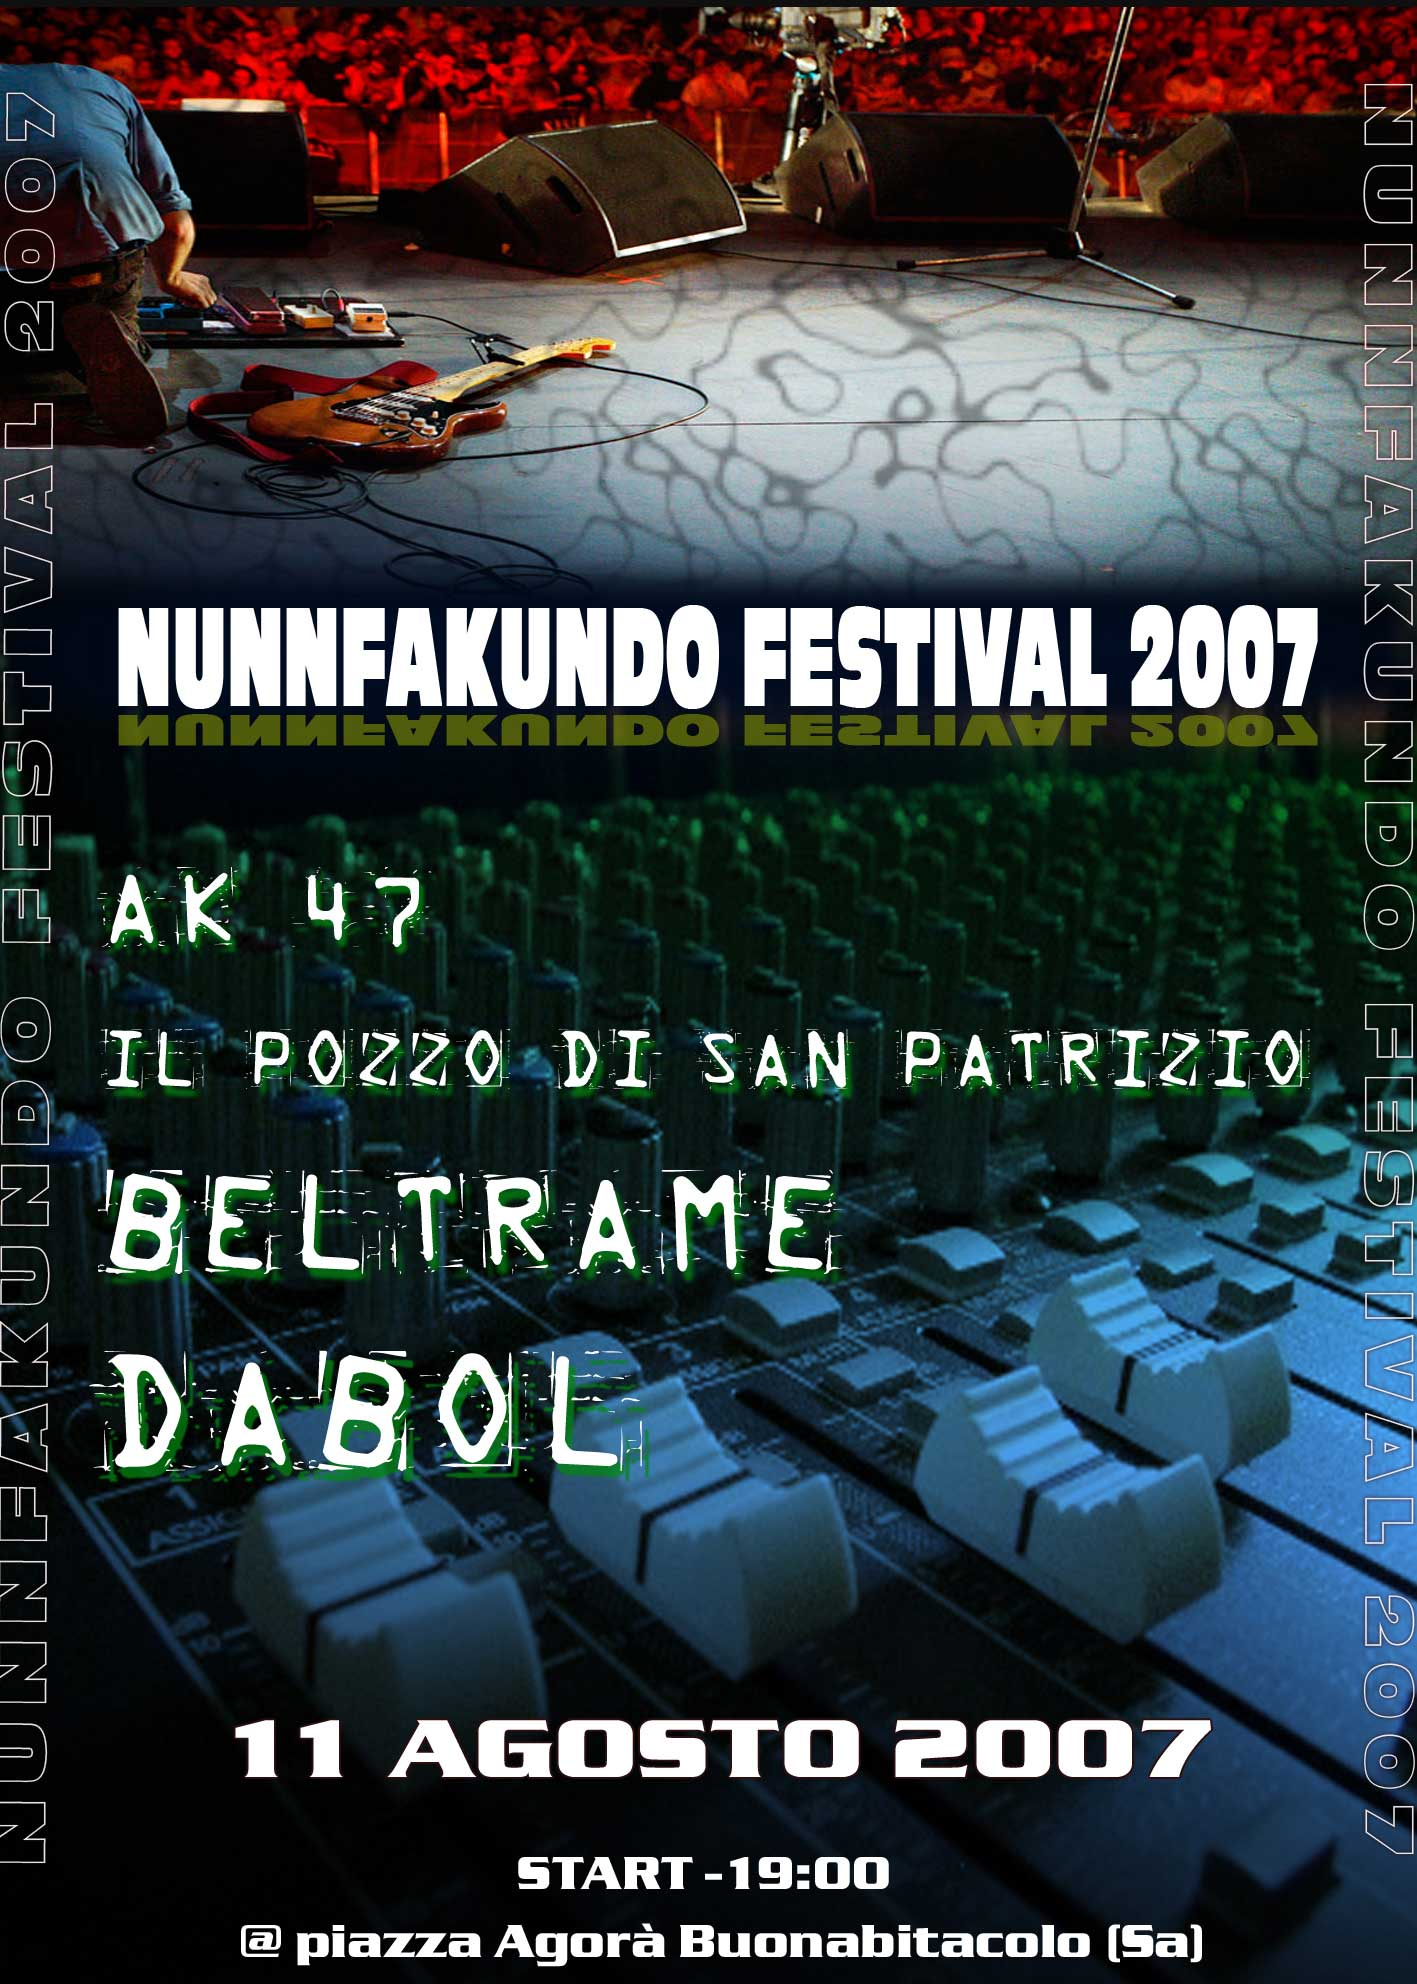 nunnfakundo 2007